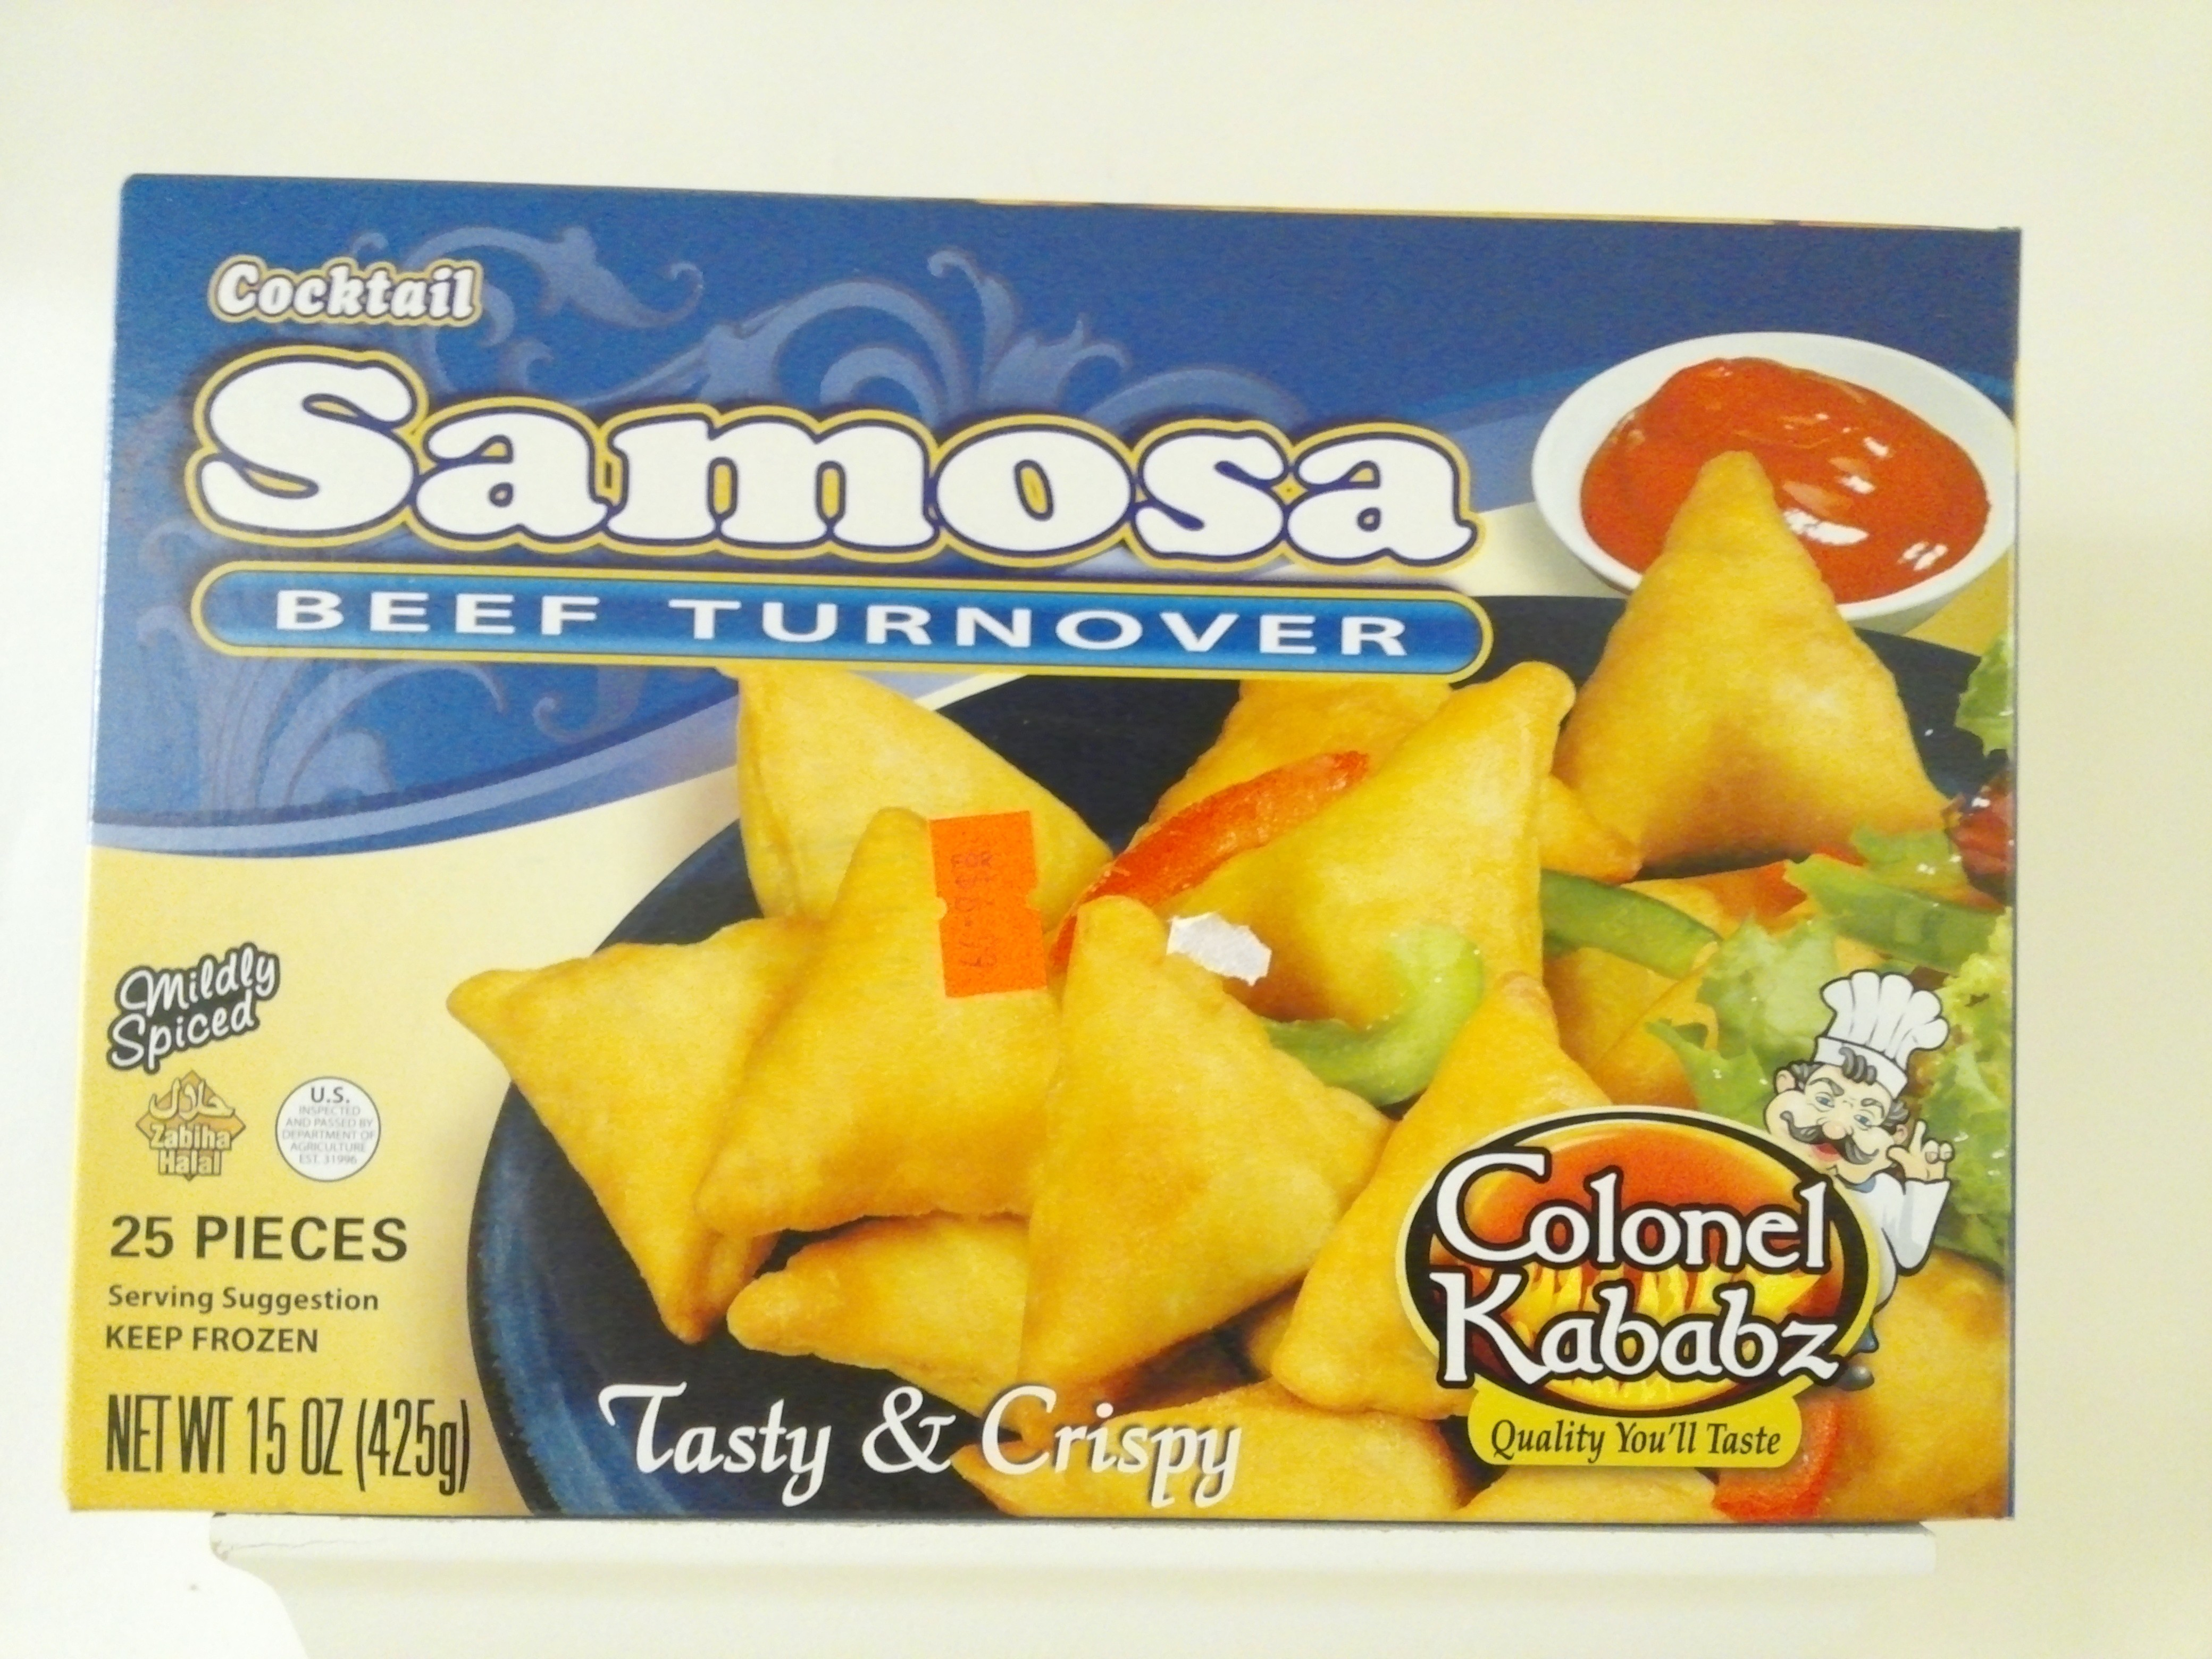 Colonel Cocktail Samosa Beef Turnover 25 pcs 15 oz